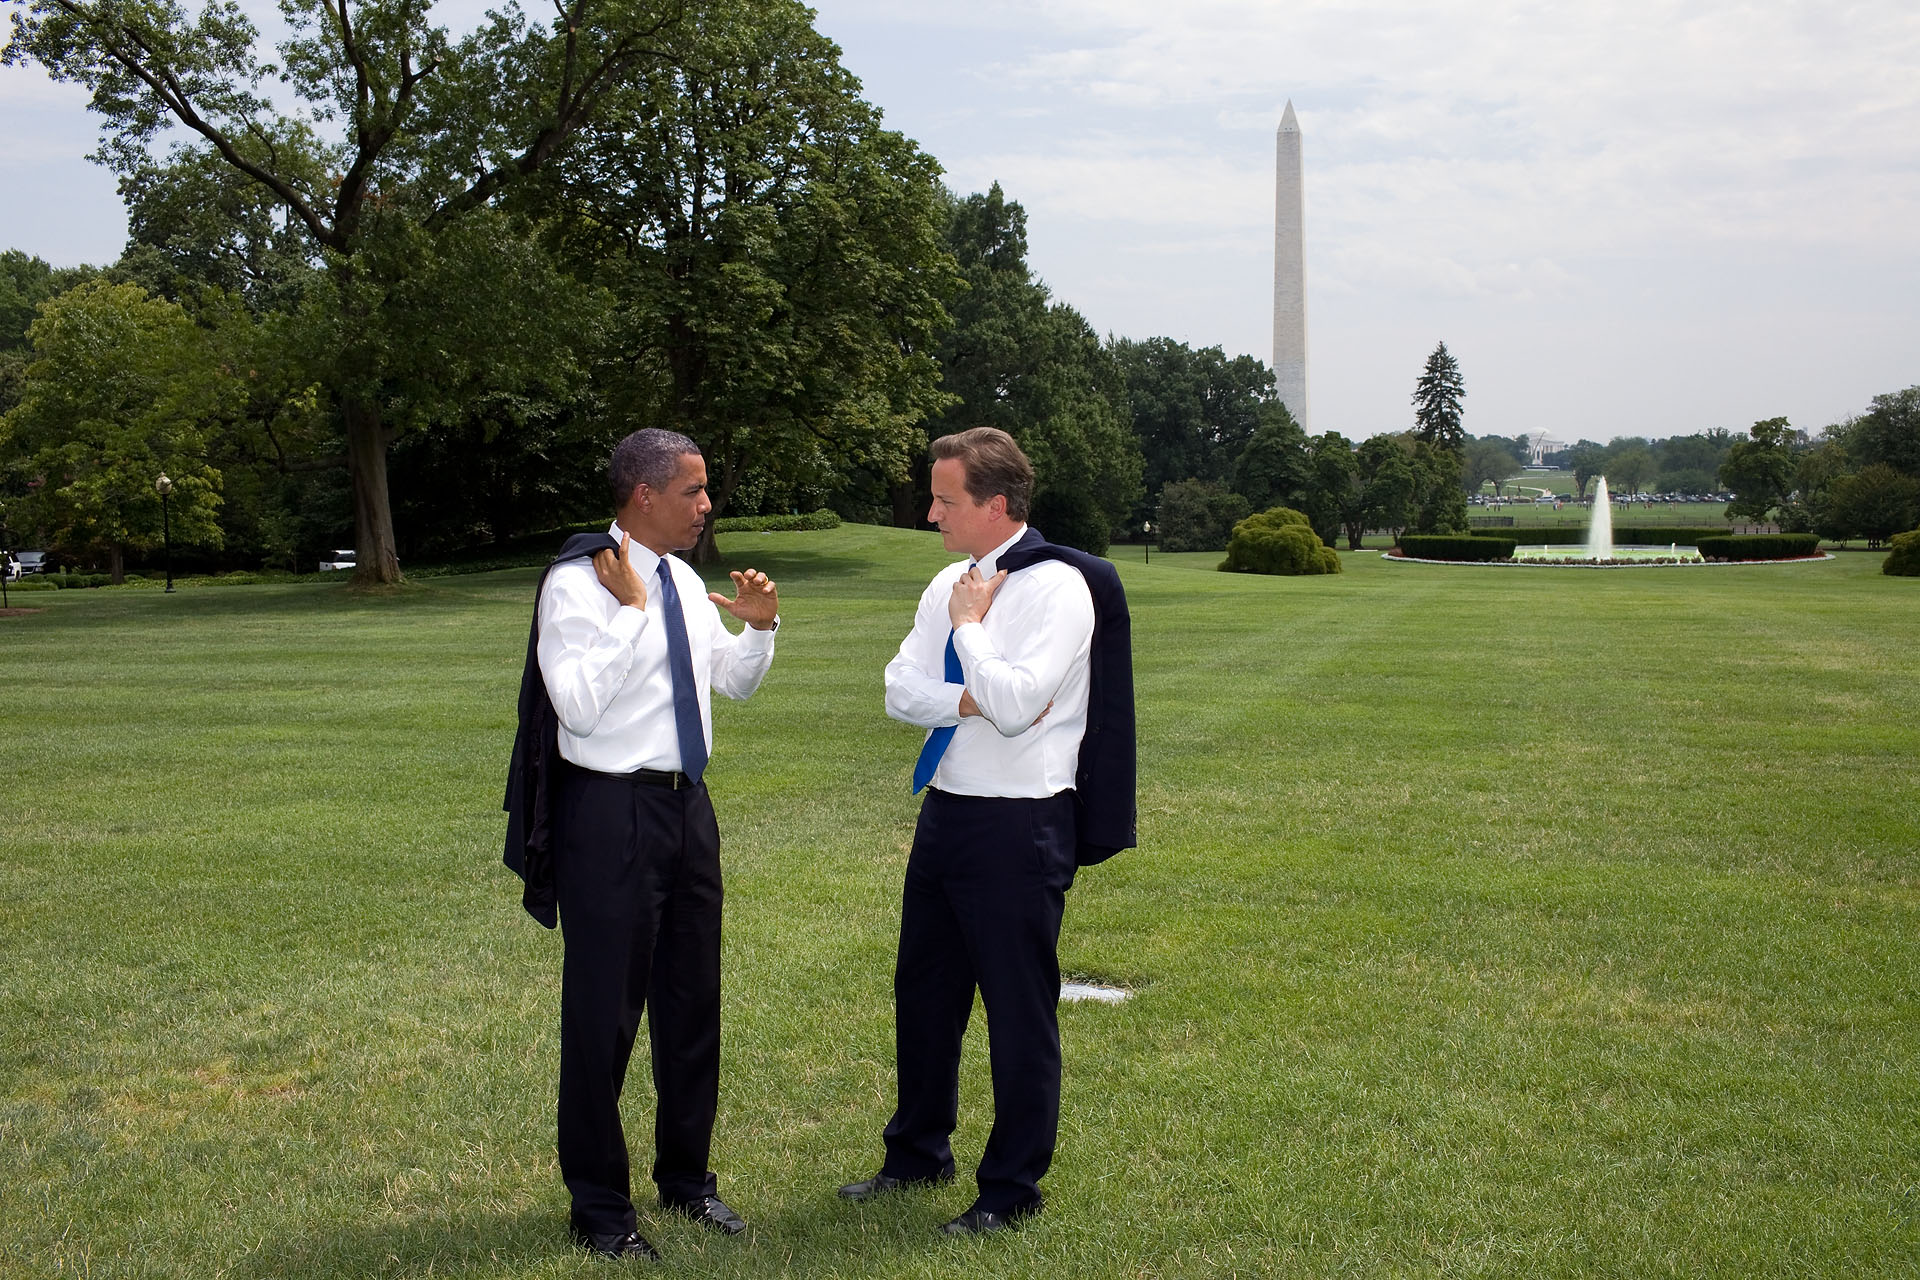 President Barack Obama and Prime Minister David Cameron of the United Kingdom Stop to Talk on the South Lawn